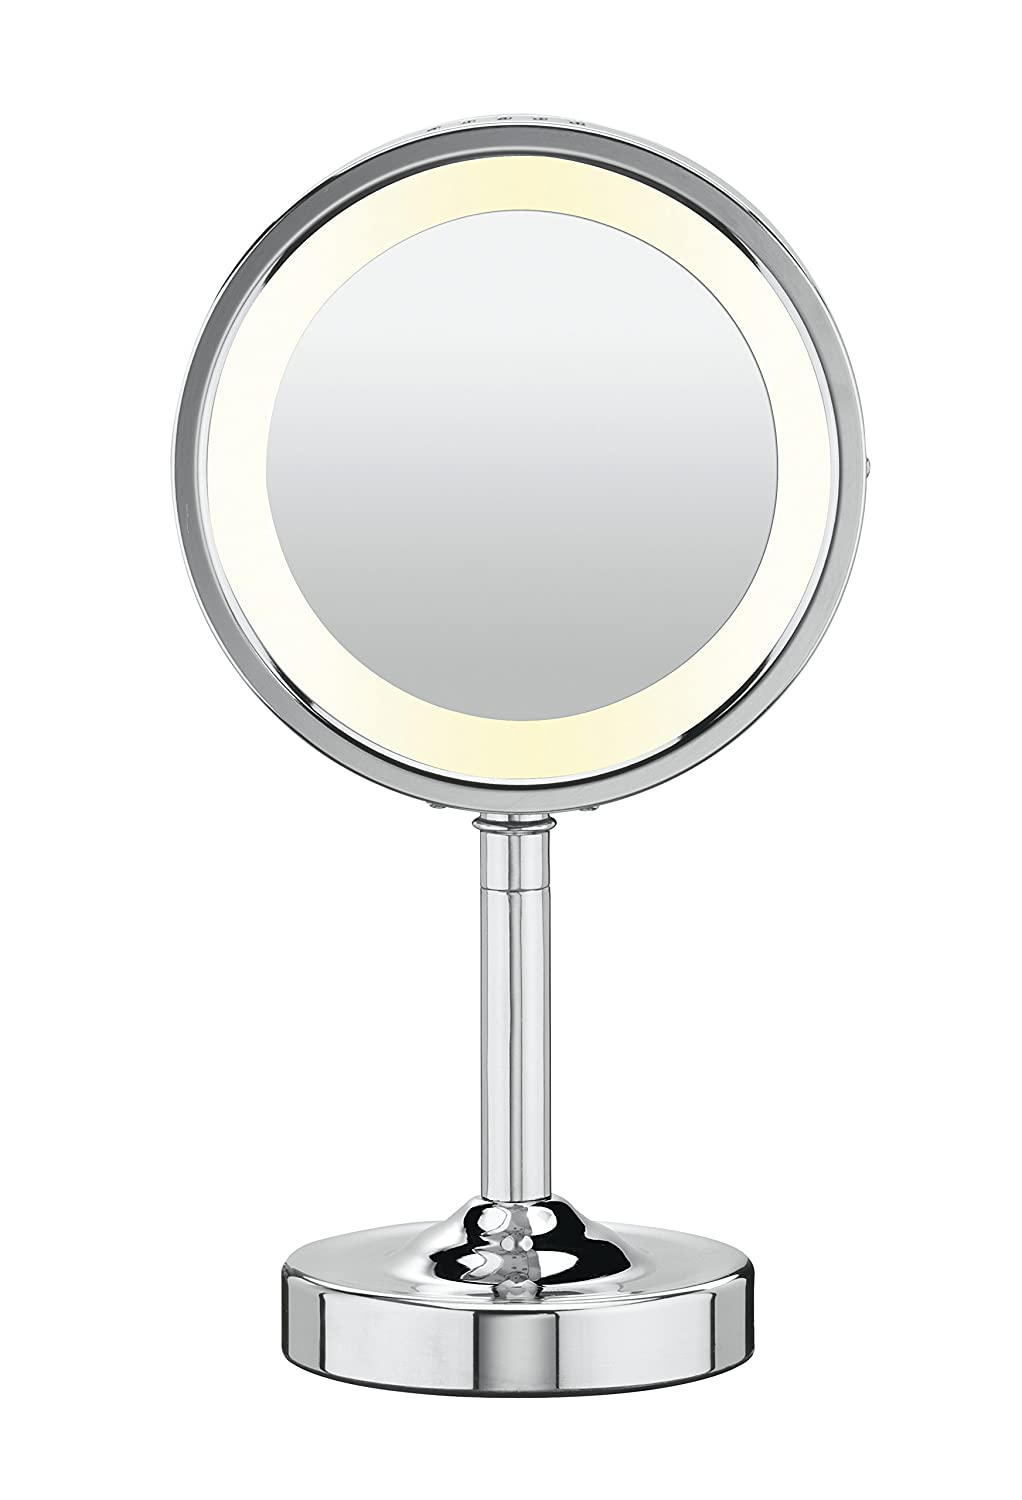 small vanity mirror with lights. amazon.com : conair round shaped double-sided lighted makeup mirror; 1x/5x magnification; polished chrome finish personal mirrors beauty small vanity mirror with lights